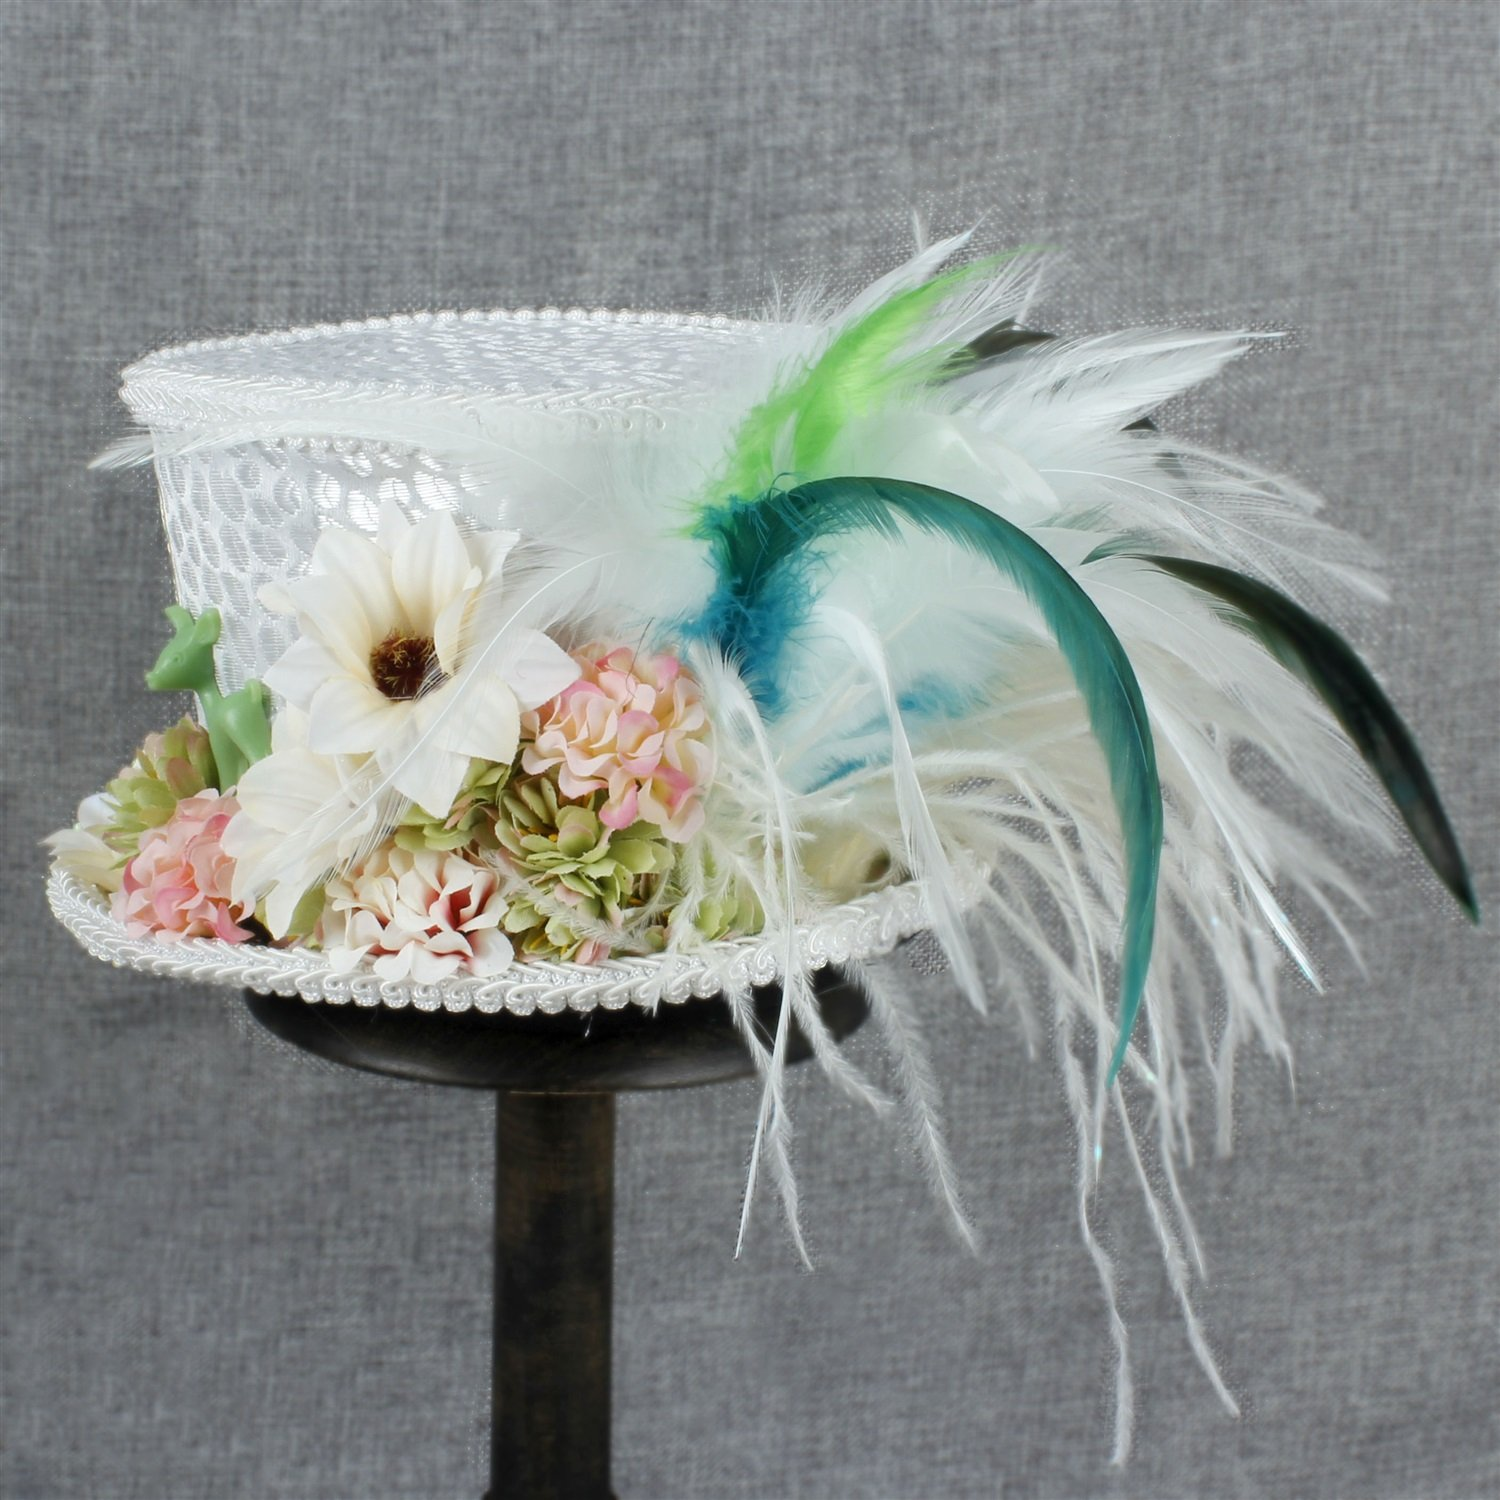 LL Women's White Mini Top Hat Tea Hat Mad Hatter Tea hat, Bridal Hat, Kentucky Derby hat (Color : White, Size : 25-30cm) by LL (Image #8)